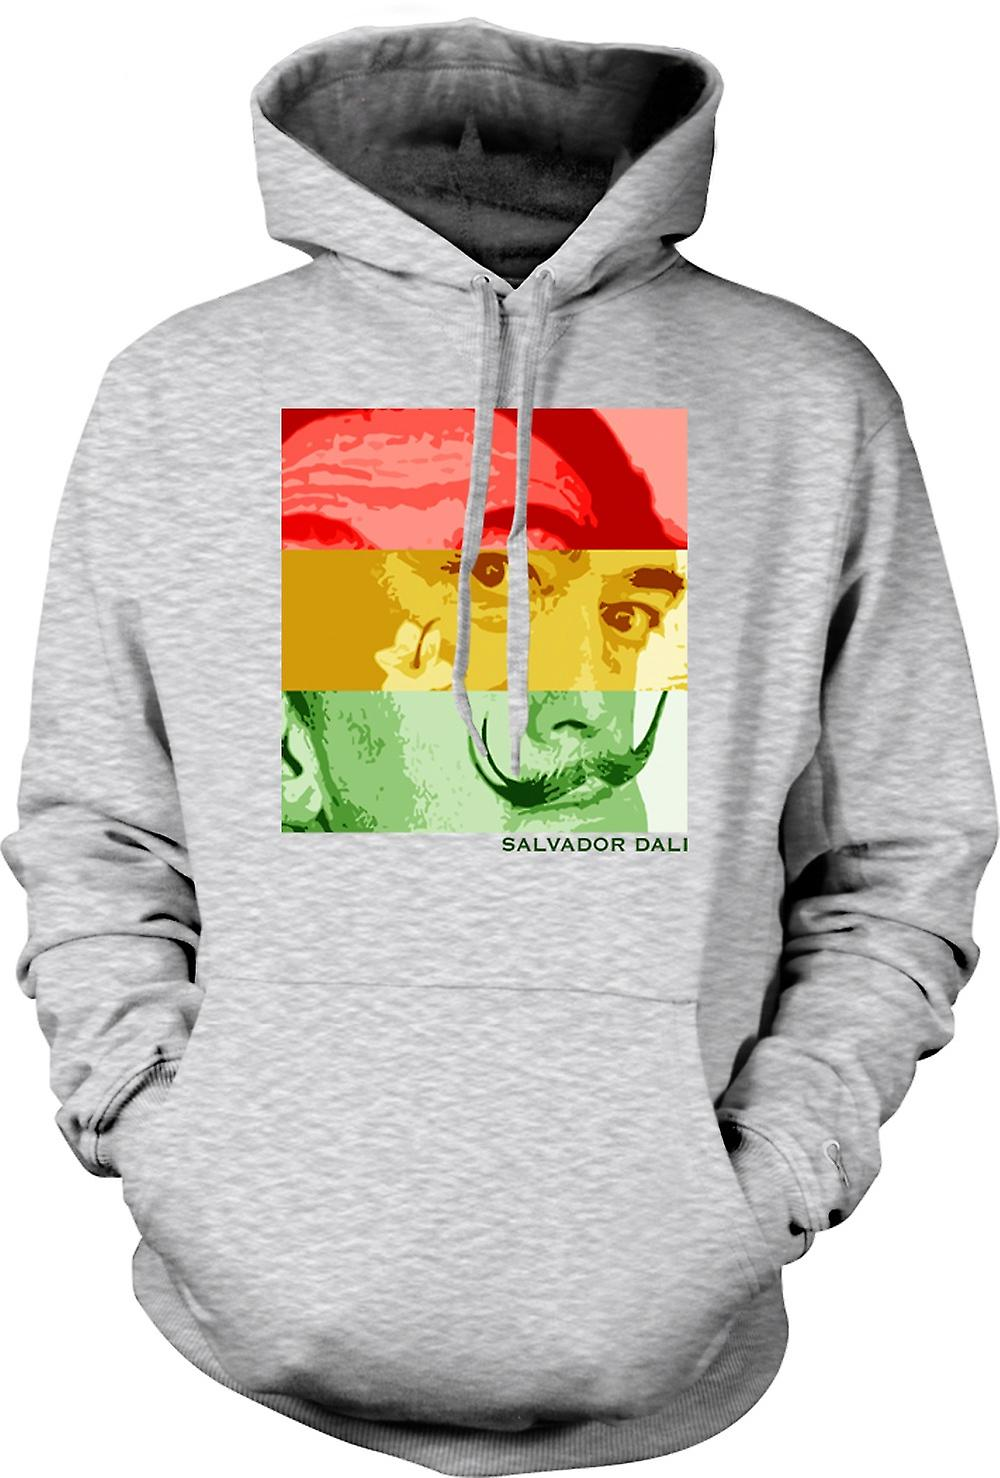 Mens Hoodie - Salvador Dali - Pop Art - Surreal Artist